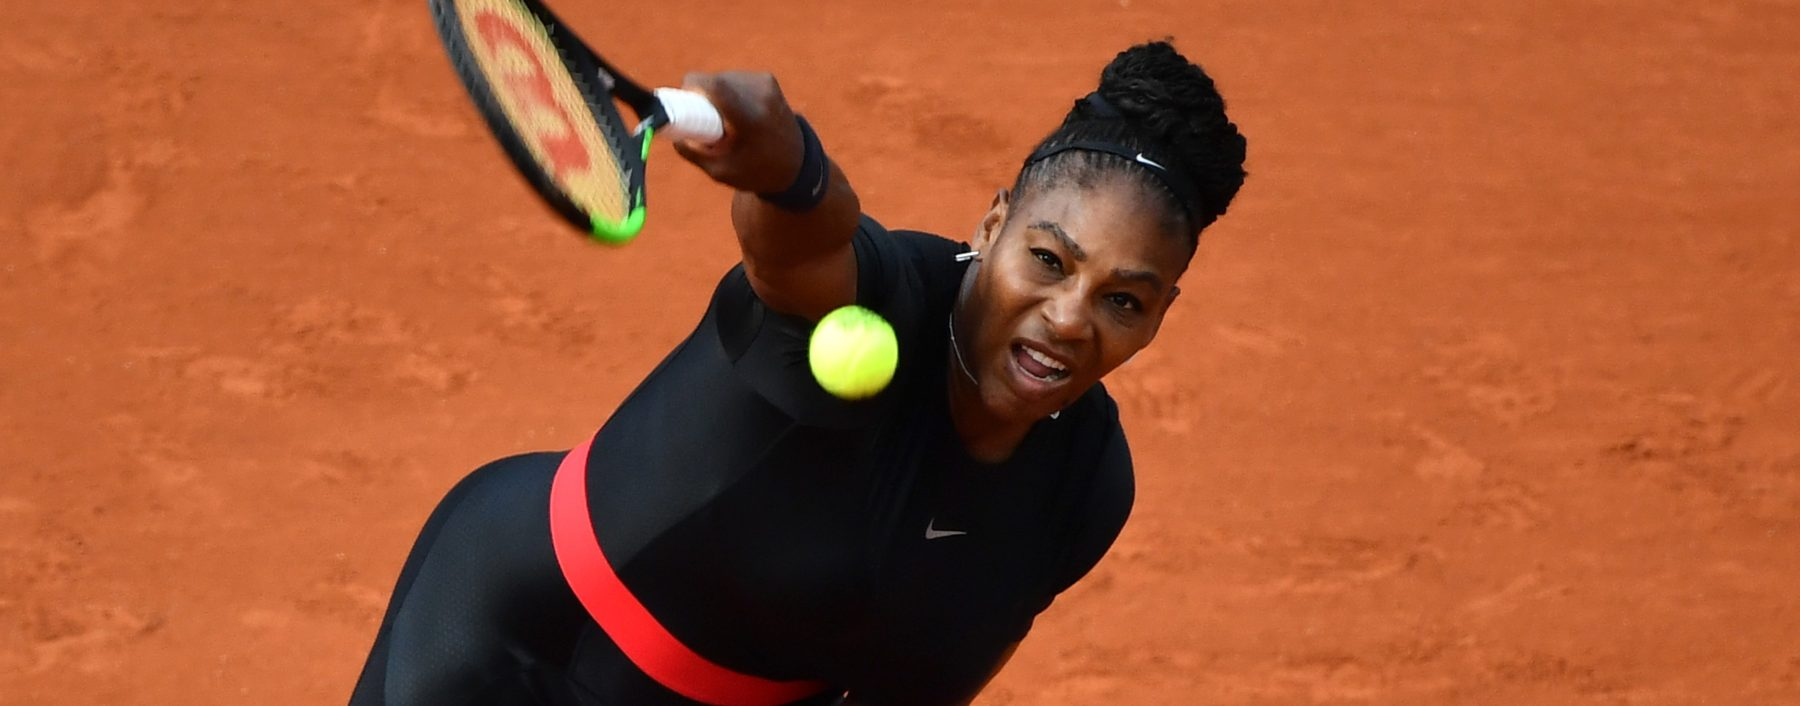 Serena Williams of the USA in action against Kristyna Pliskova (not seen) of Czech Republic during their first round match at the French Open tennis tournament at Roland Garros Stadium in Paris, France on May 29, 2018. (Photo by Mustafa Yalcin/Anadolu Agency/Getty Images)